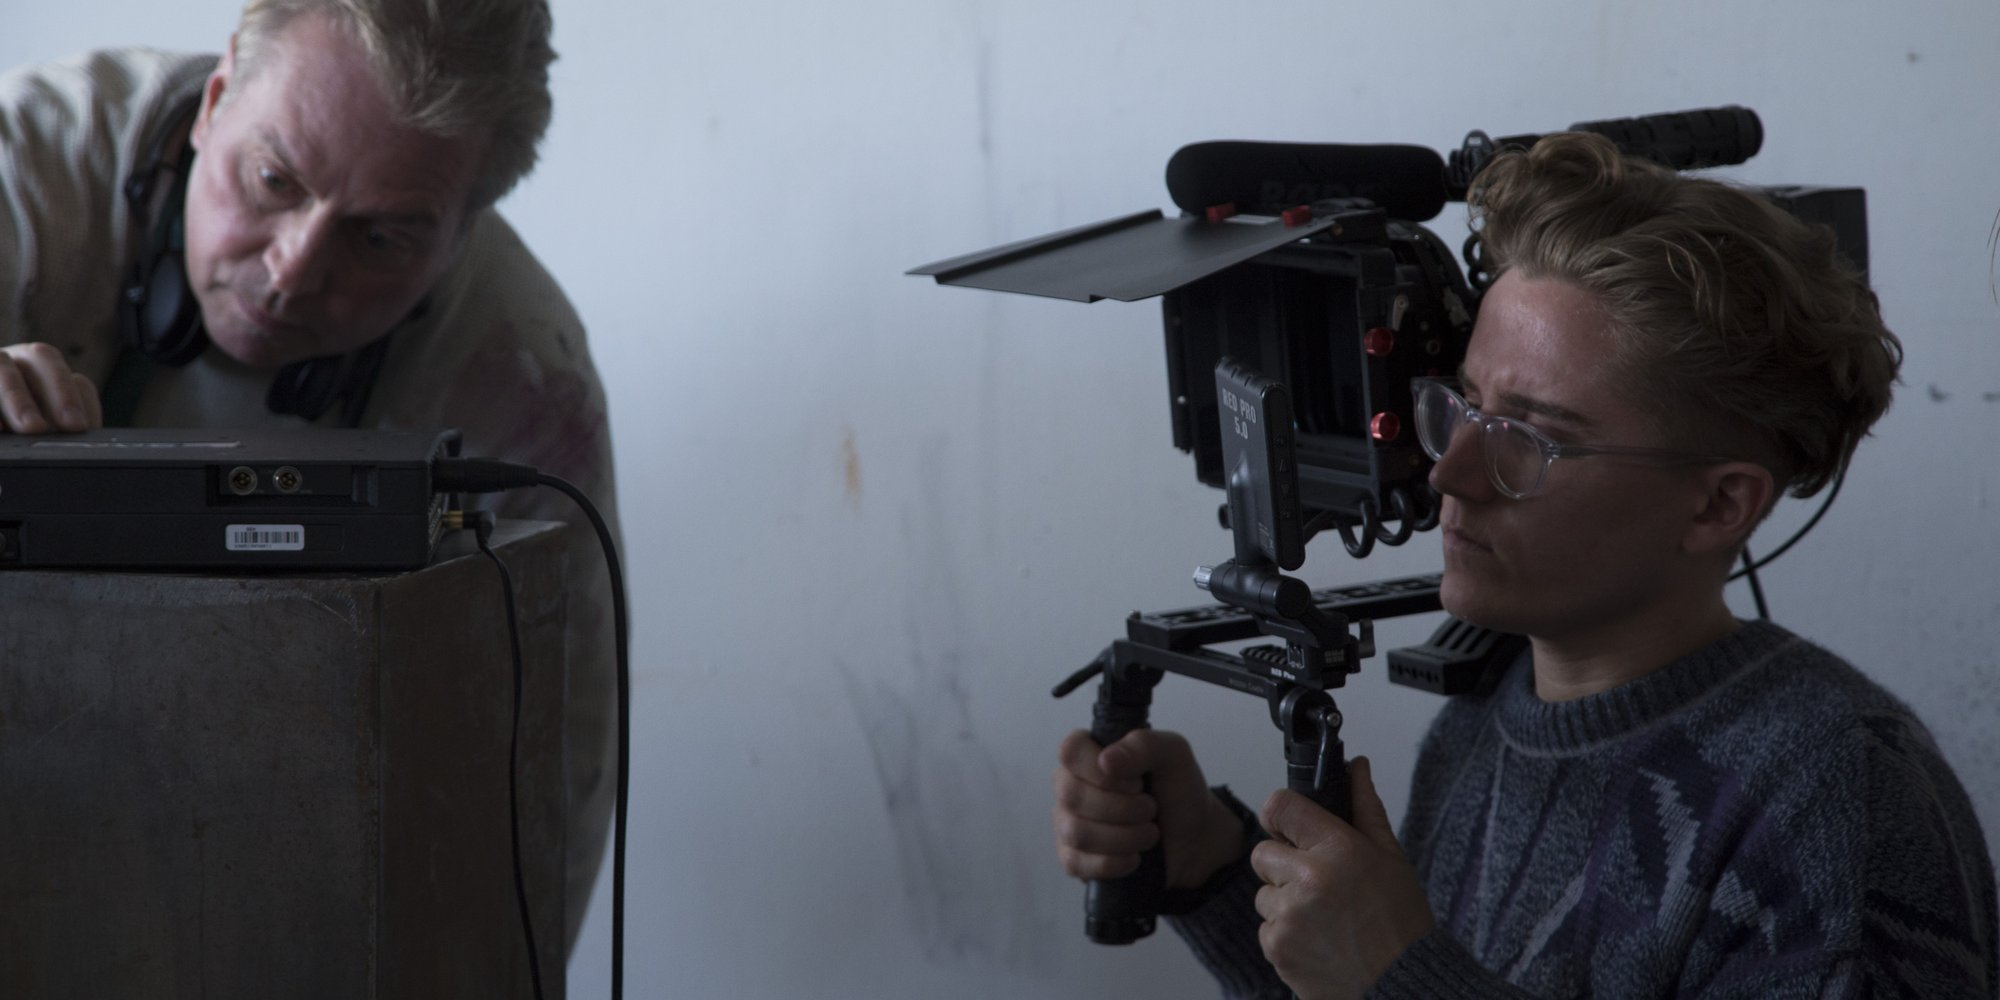 Our DP Jeremy was a trooper and operated on this run-and-gun shoot.